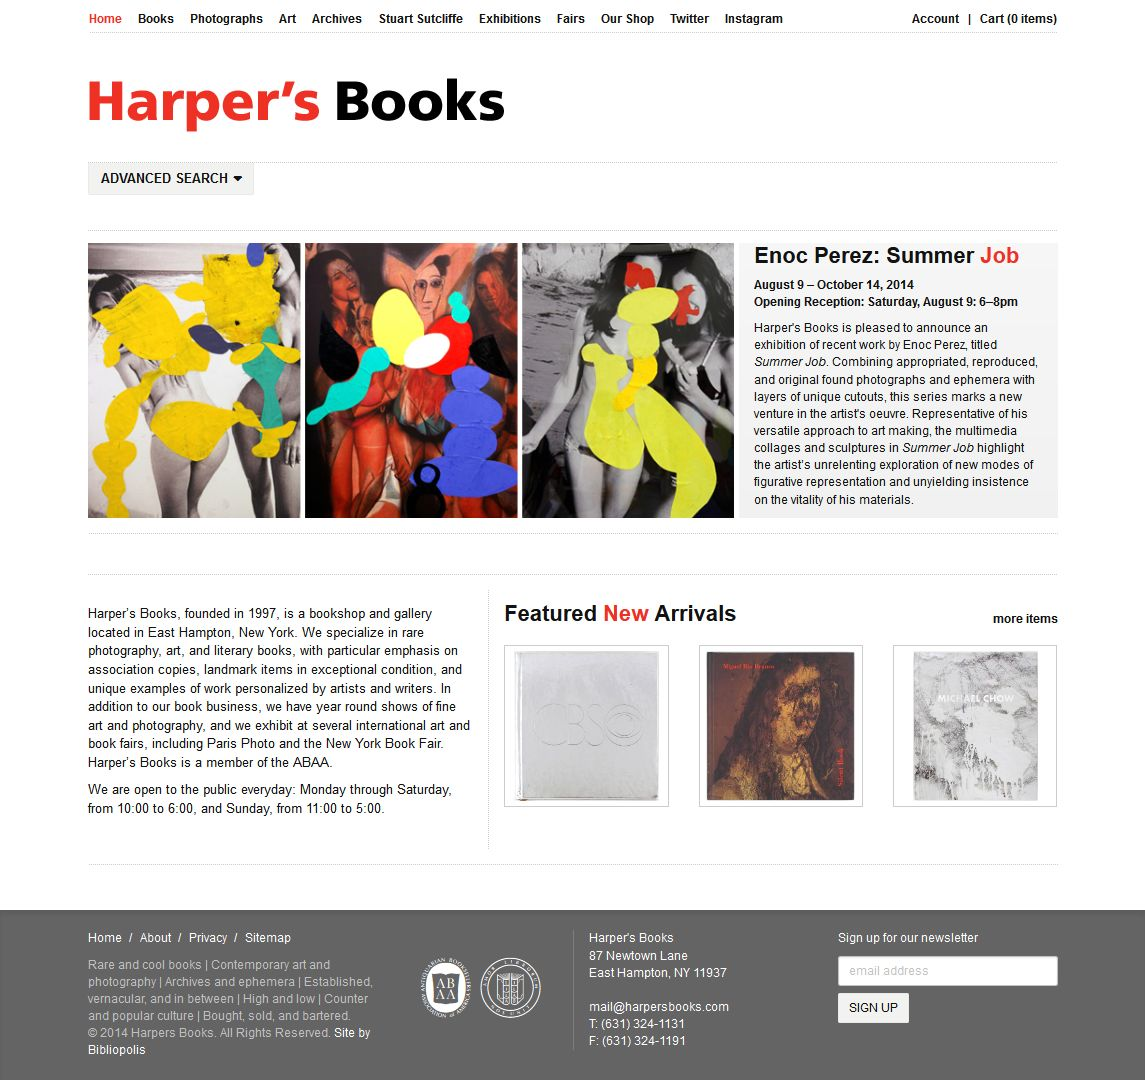 Harpers Books